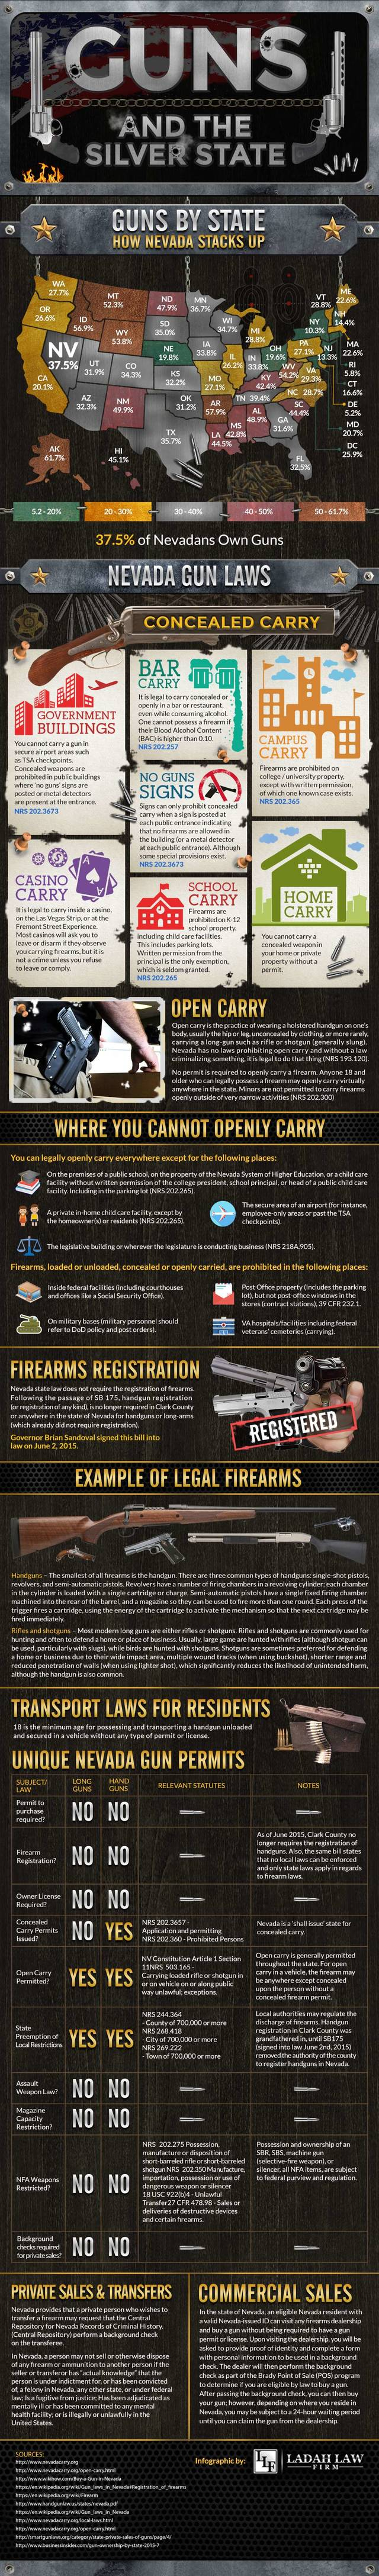 Nevada gun laws gun ownership by state infographic